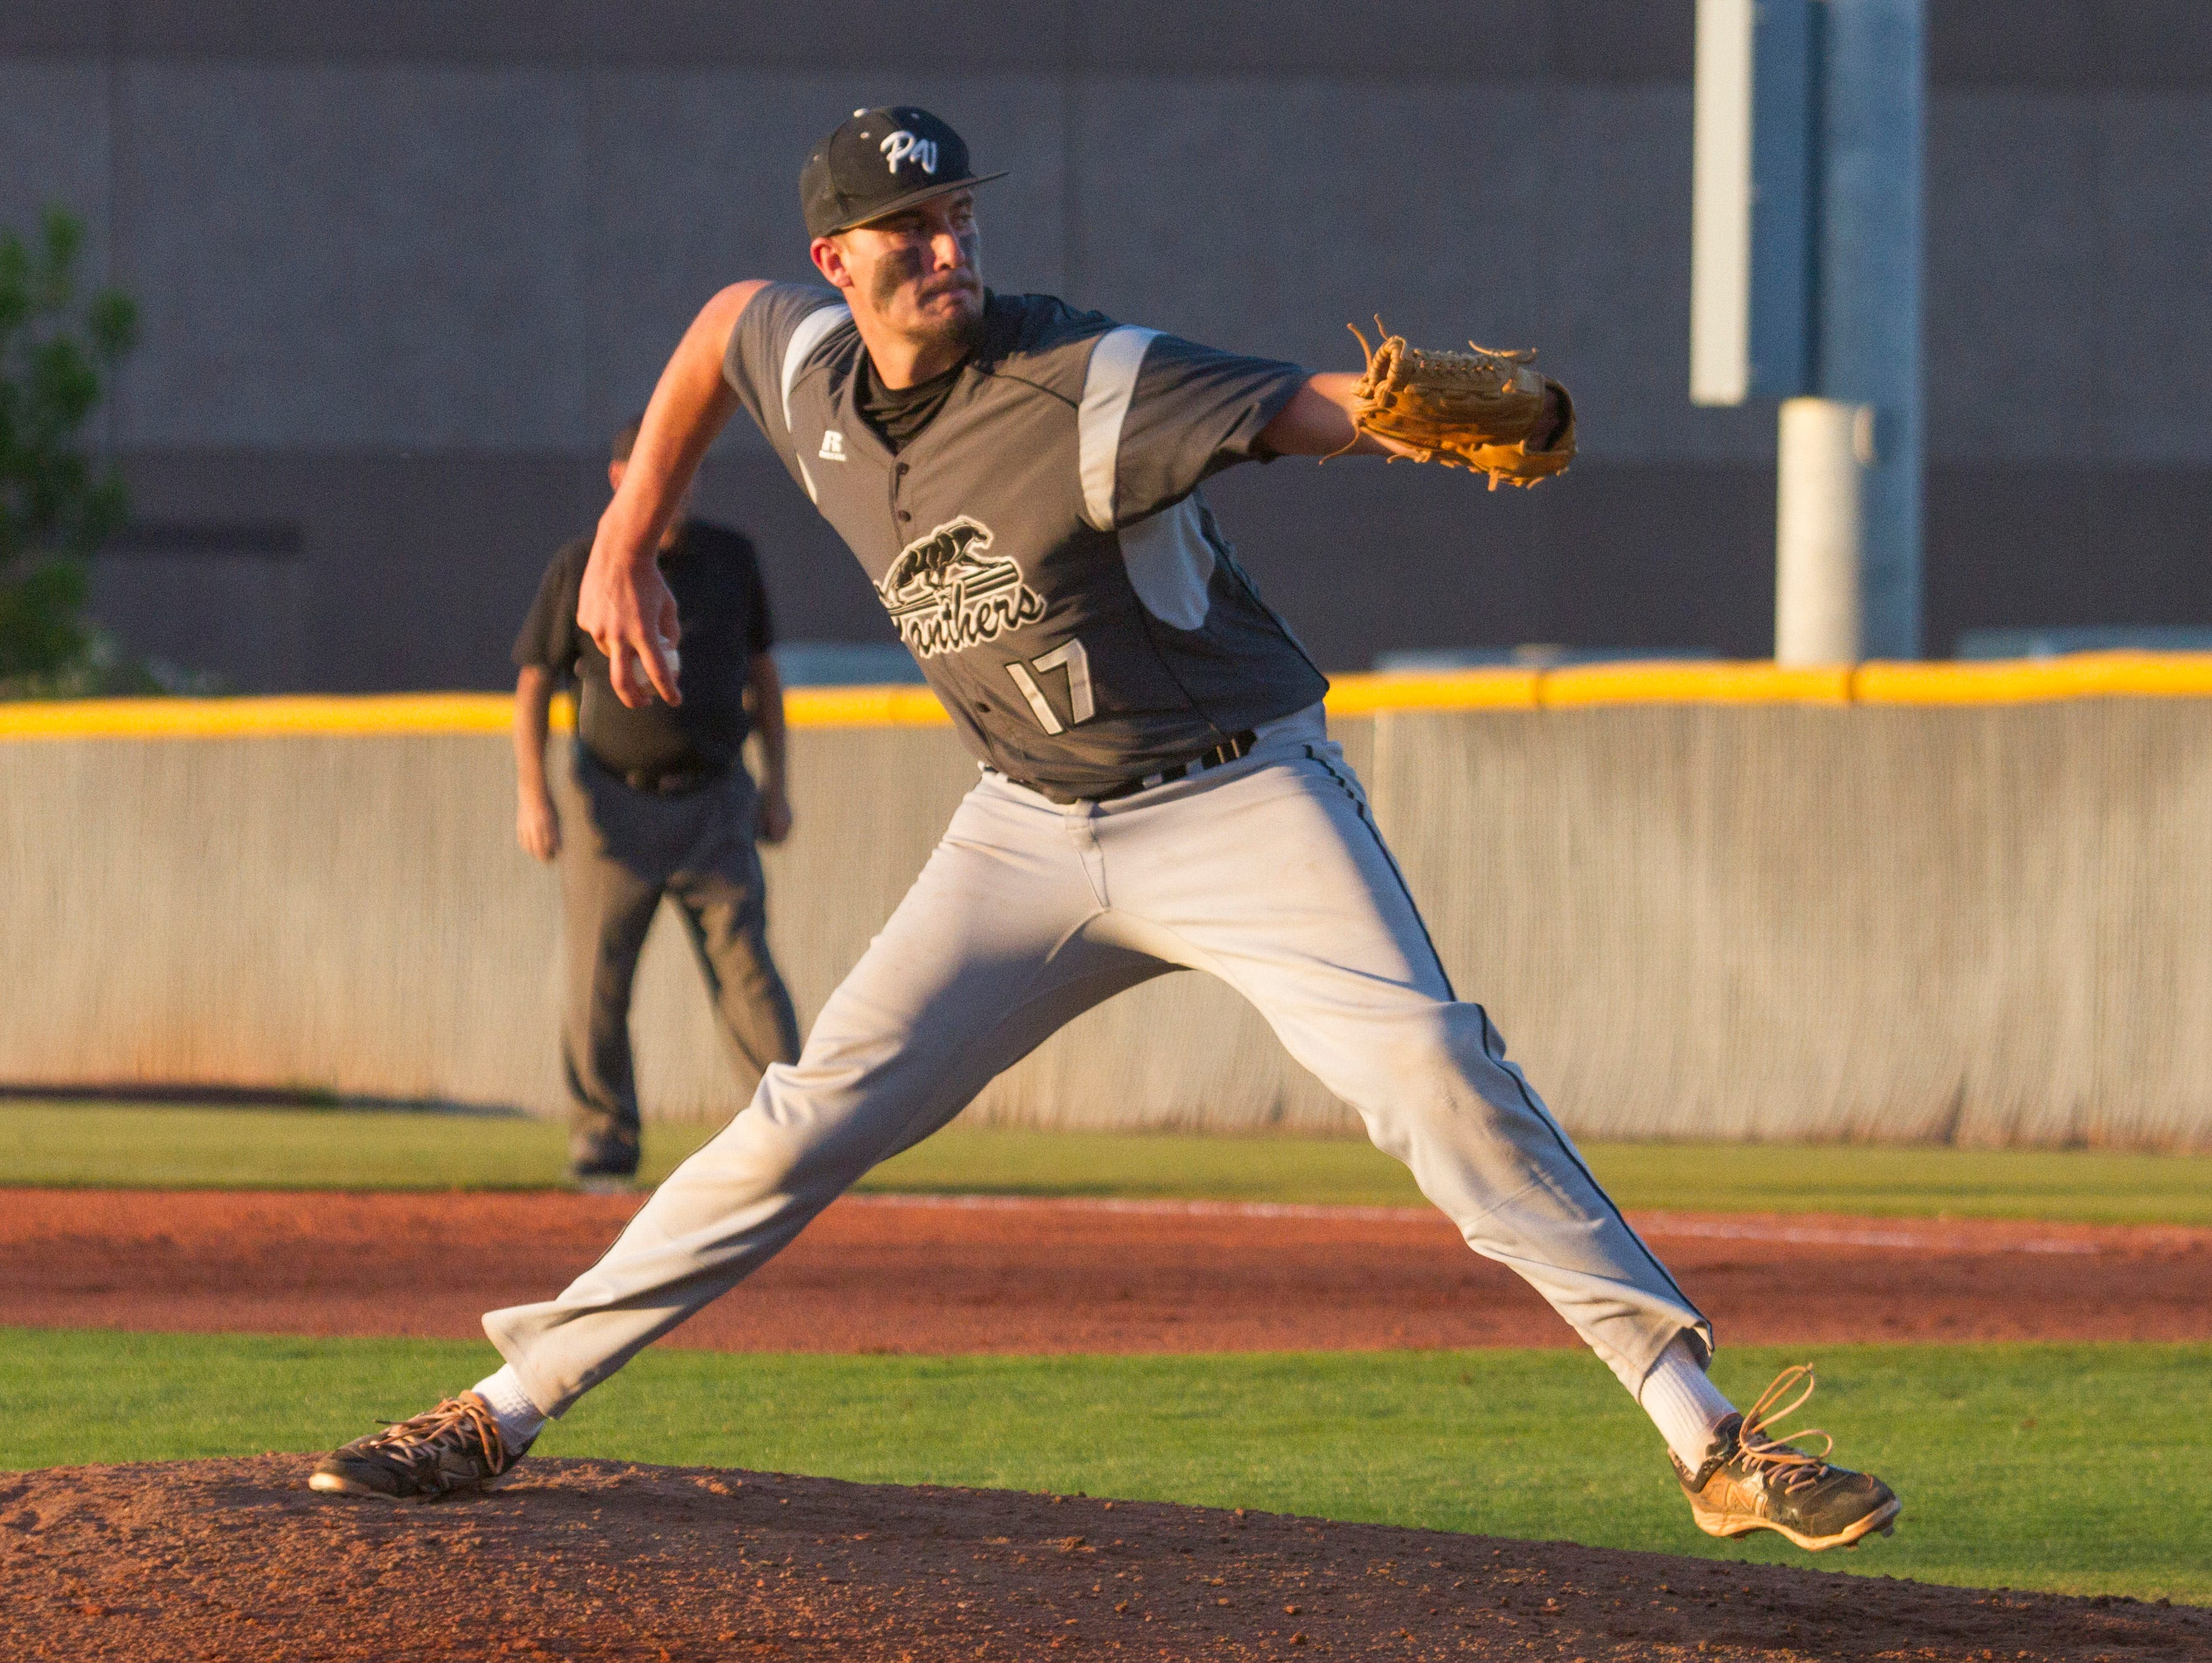 Pine View's Dakota Donovan pitches during Tuesday's 10-inning game between Desert Hills and Pine View. The Panthers went on to win 3-1.